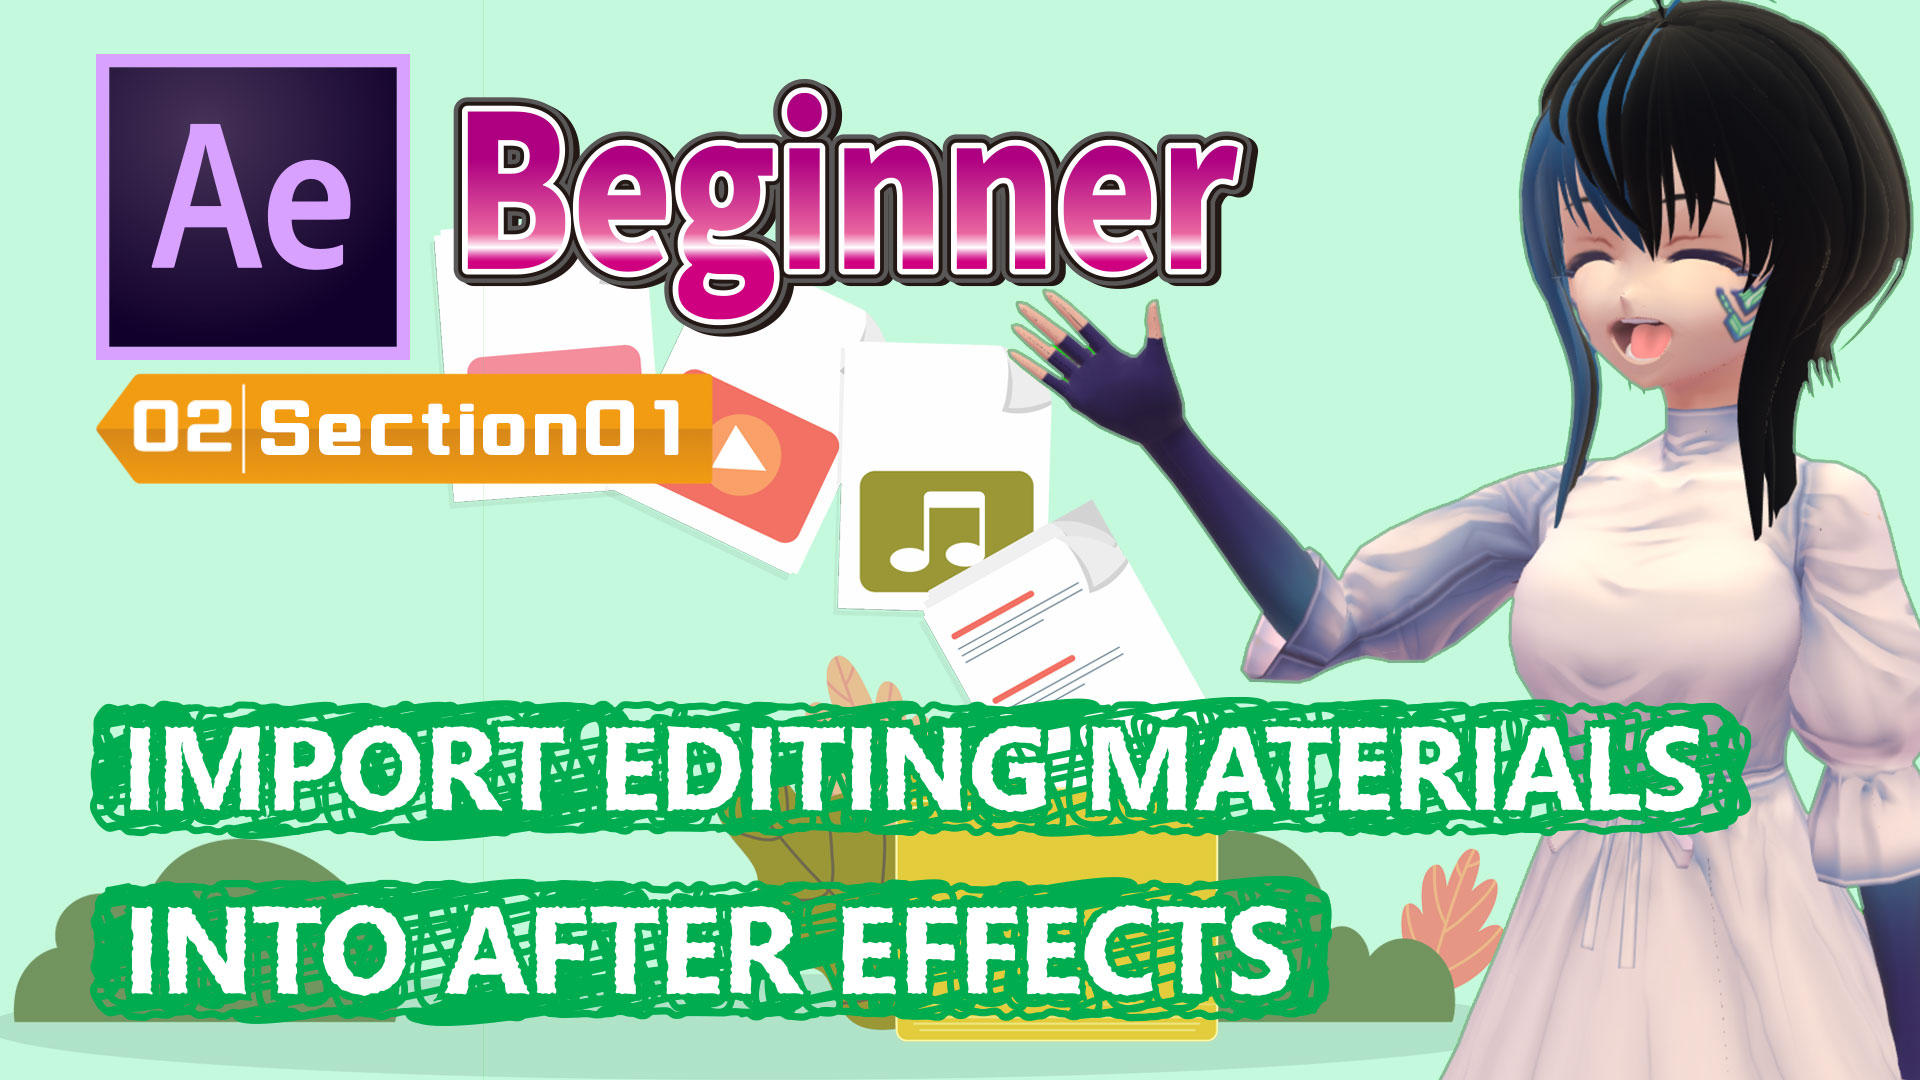 IMPORT EDITING MATERIALS INTO AFTER EFFECTS